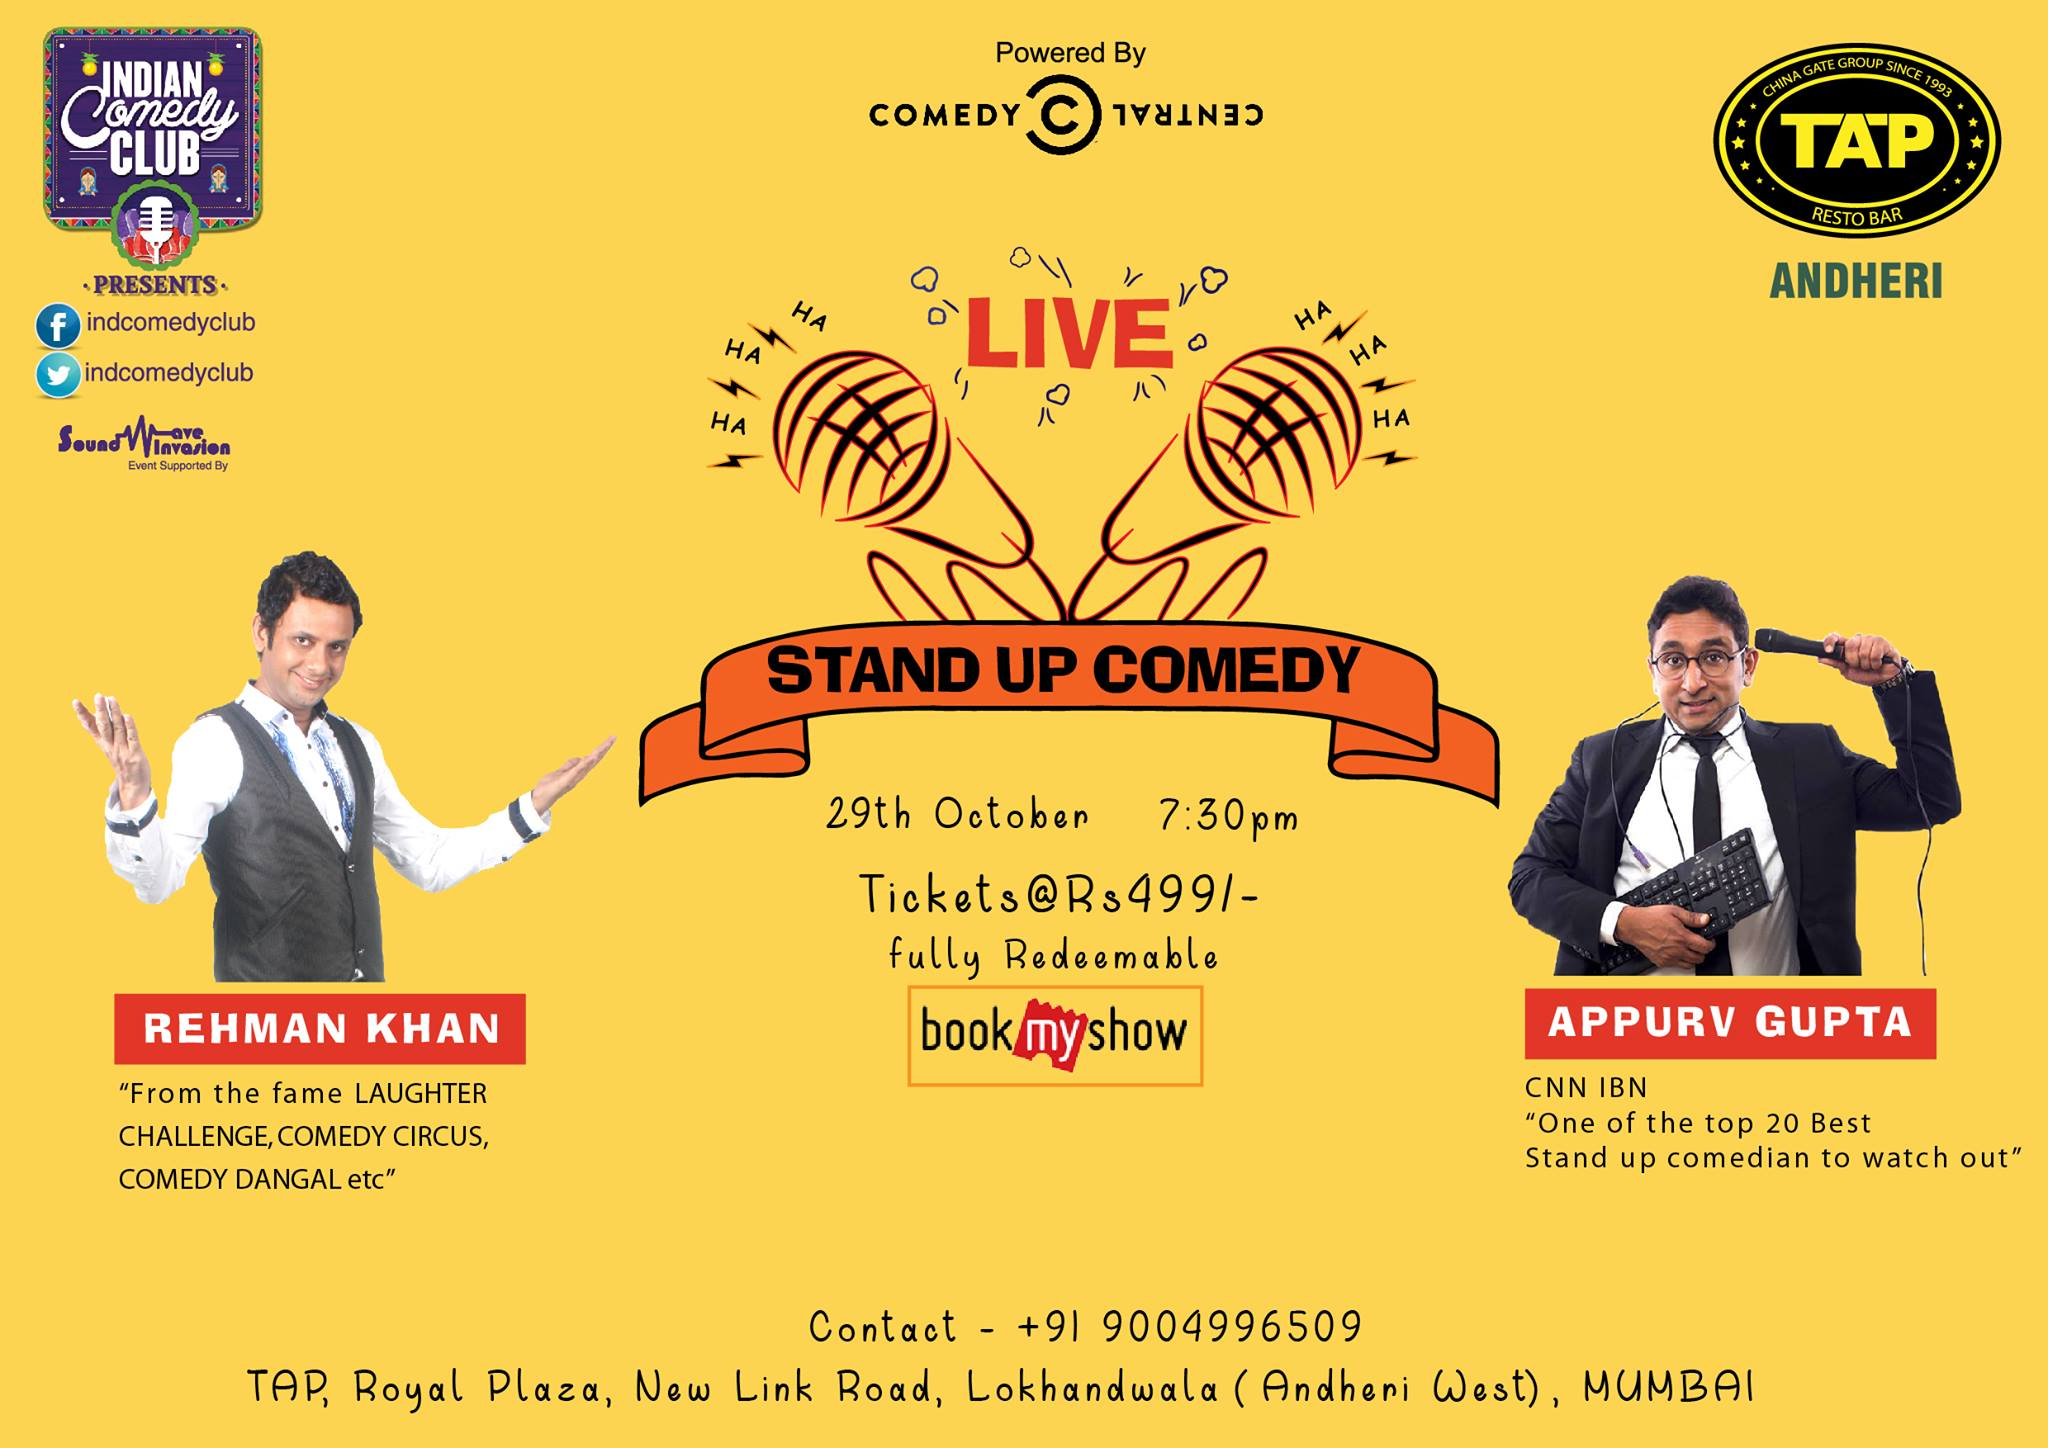 Stand-Up Comedy with Appurv Gupta and Rahman Khan